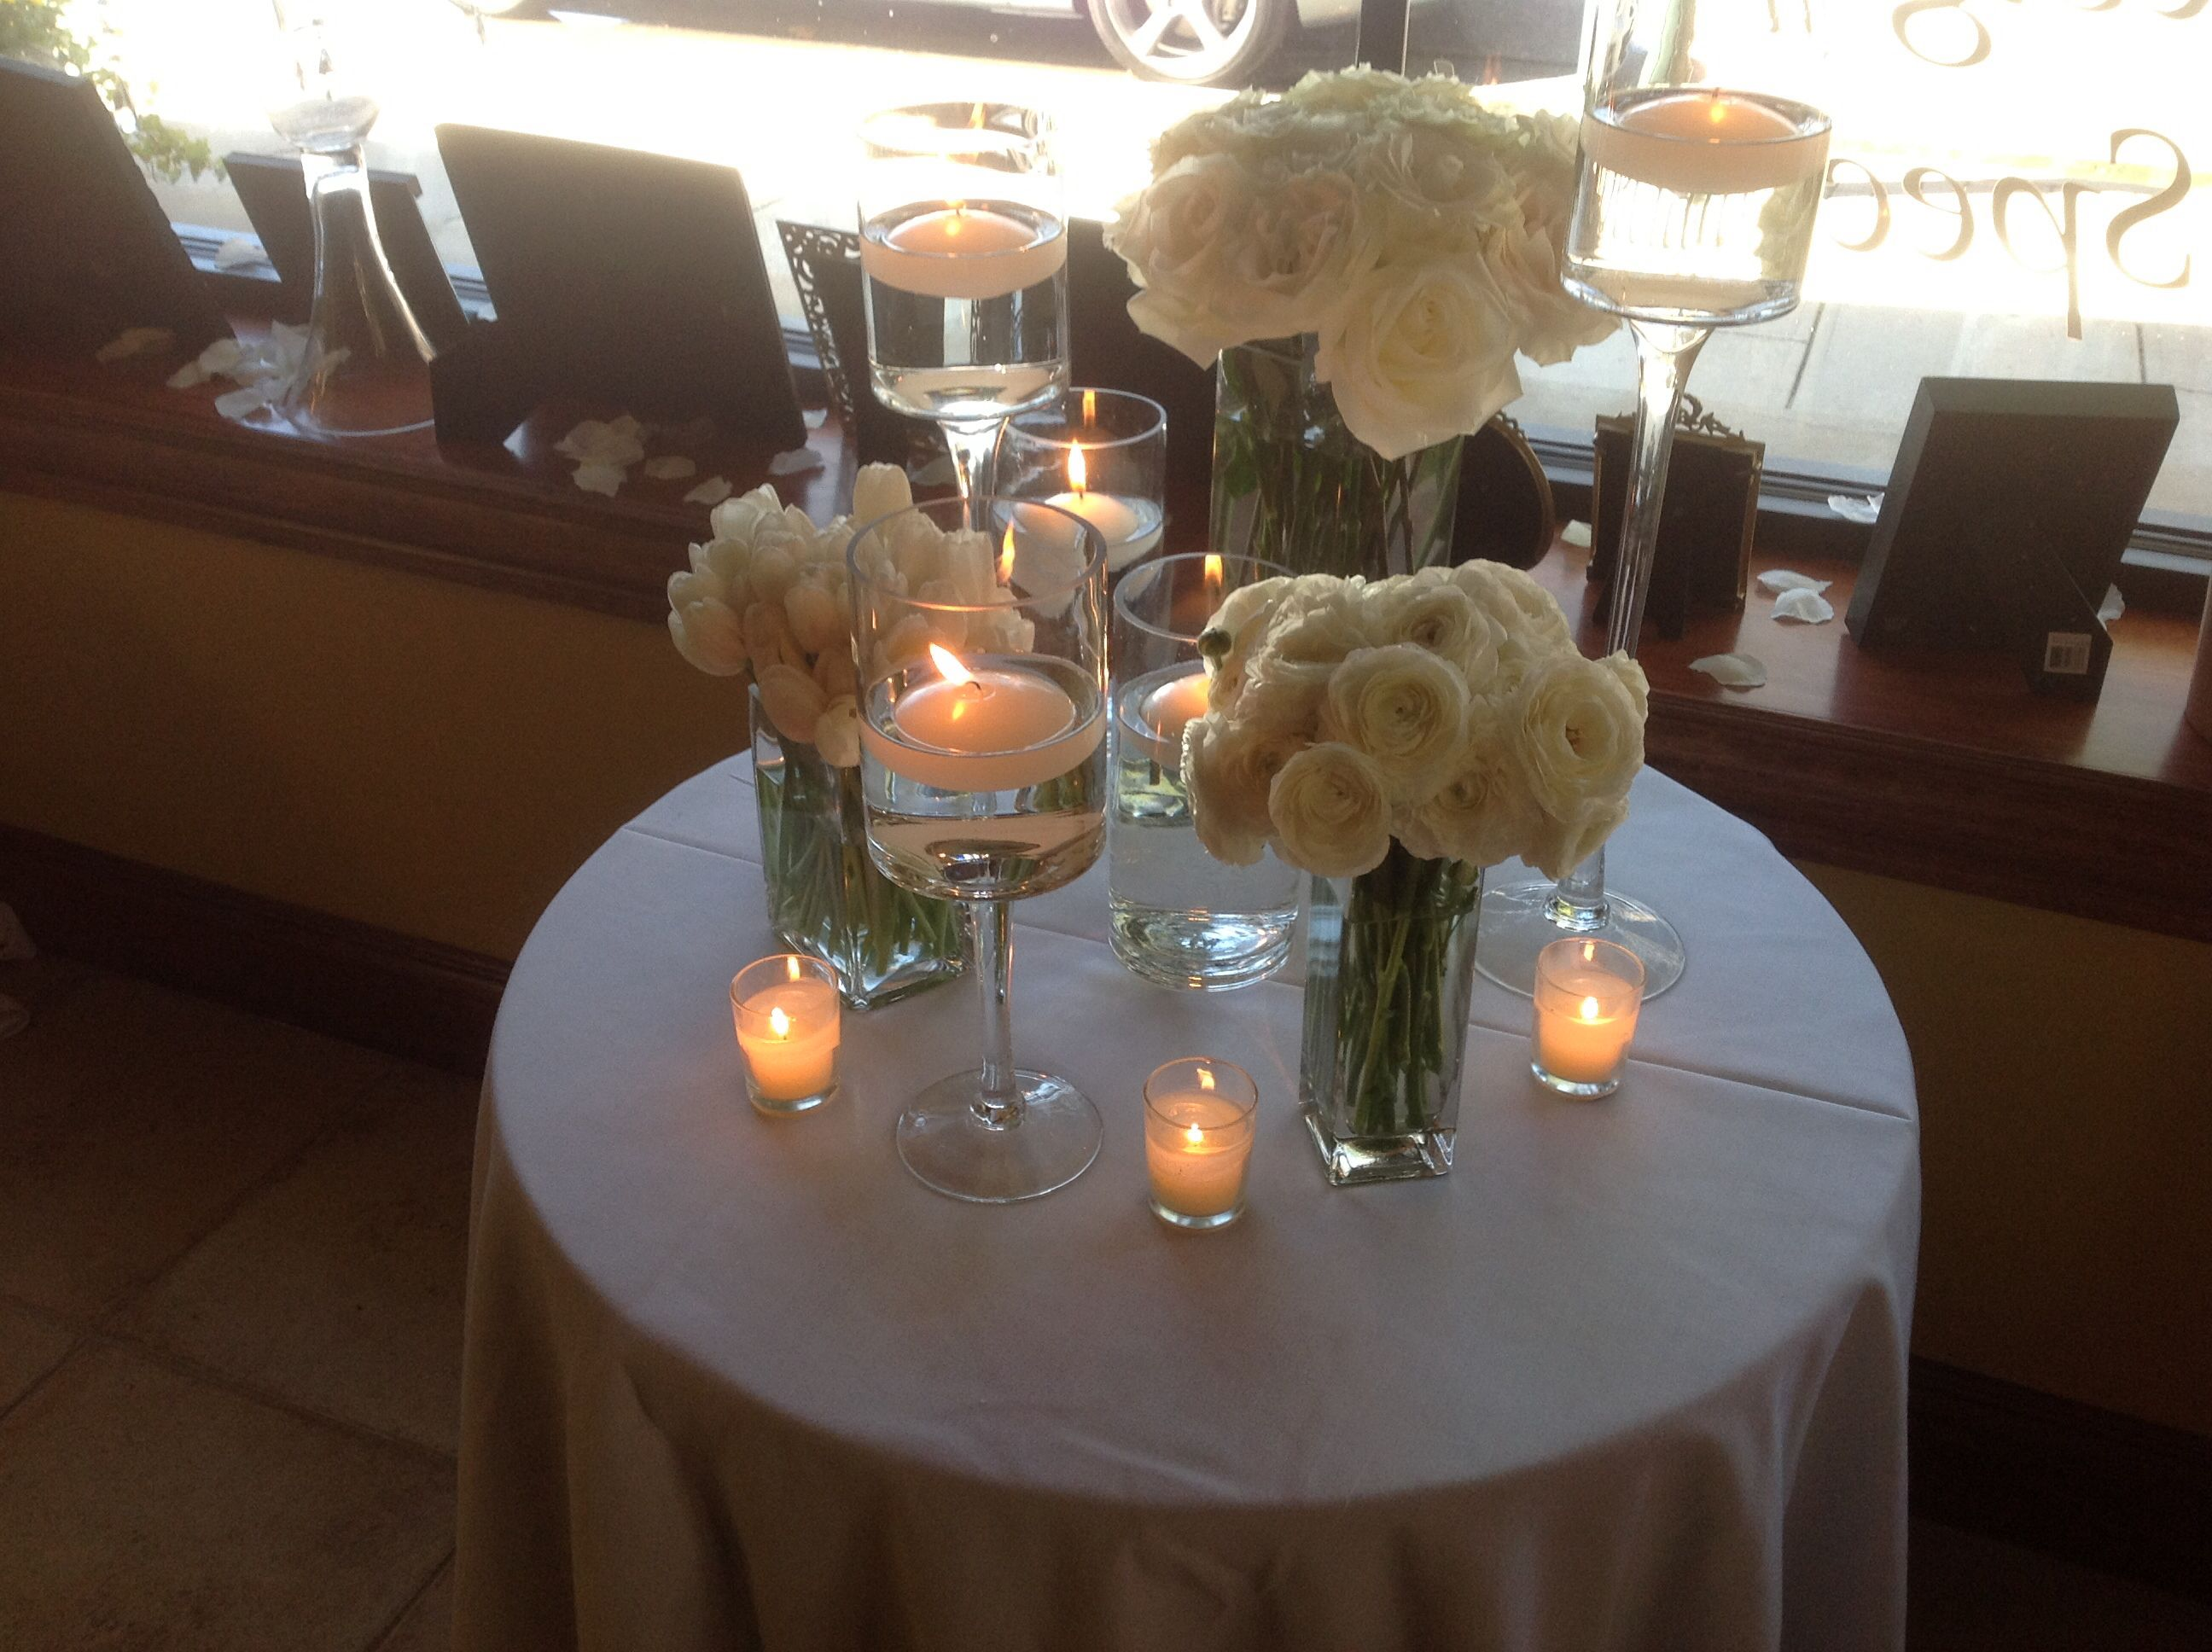 Wedding centerpiece of square vases filled with white